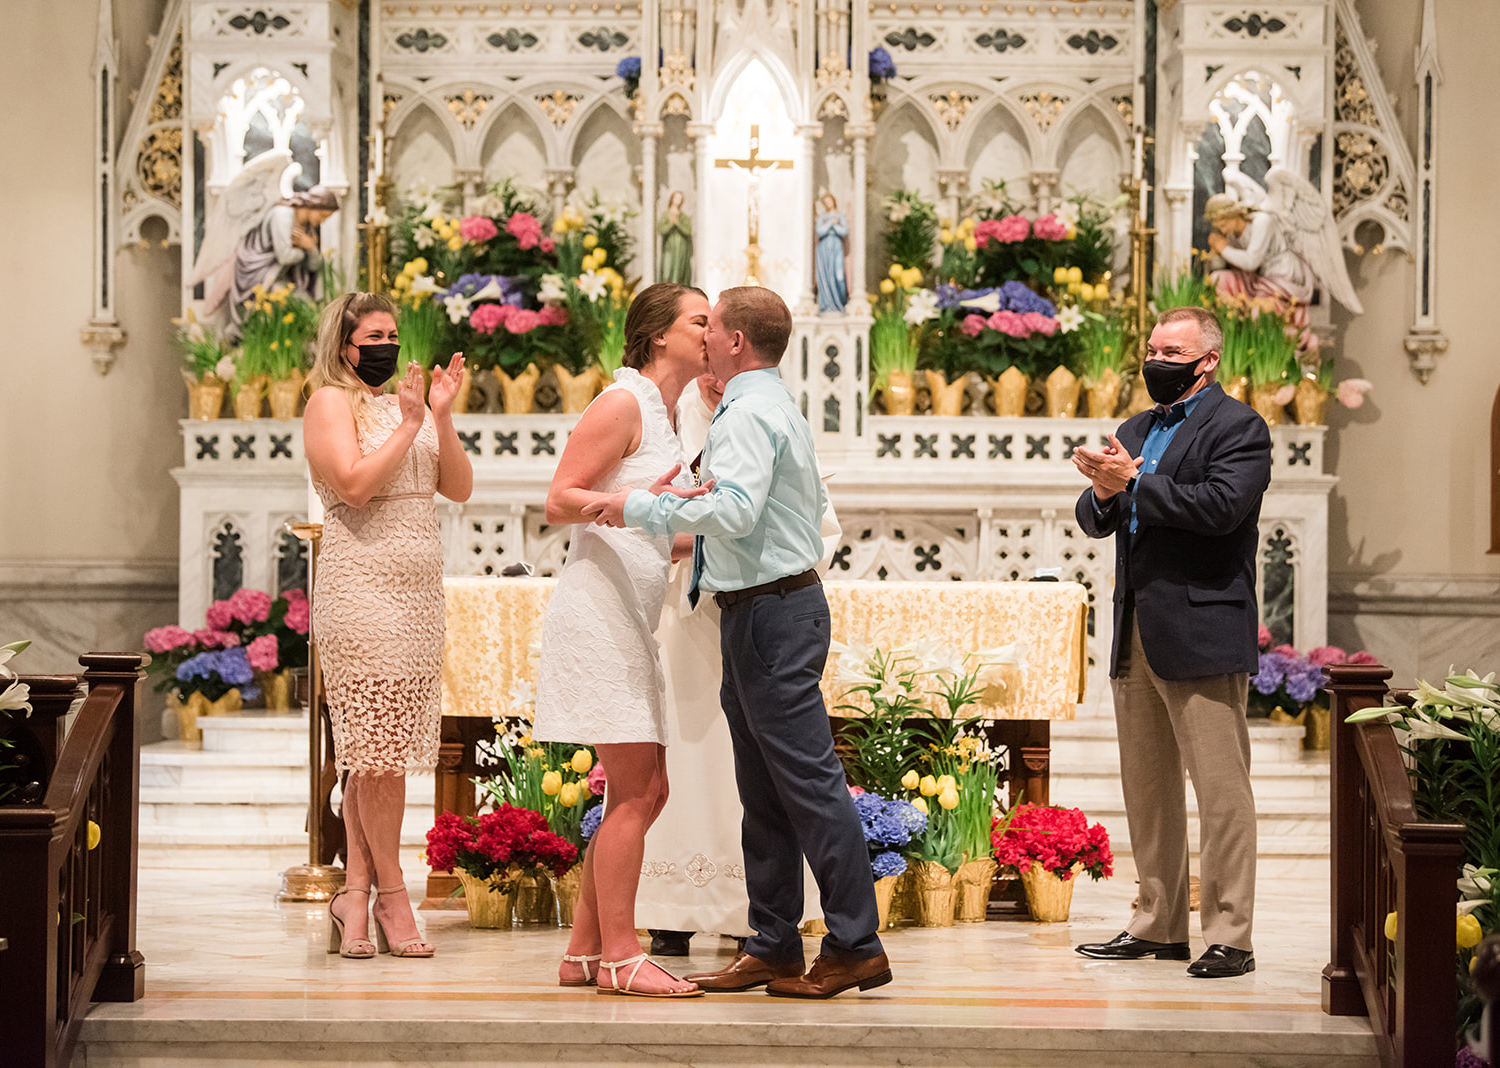 bride and groom share a kiss during their wedding ceremony in the catholic church